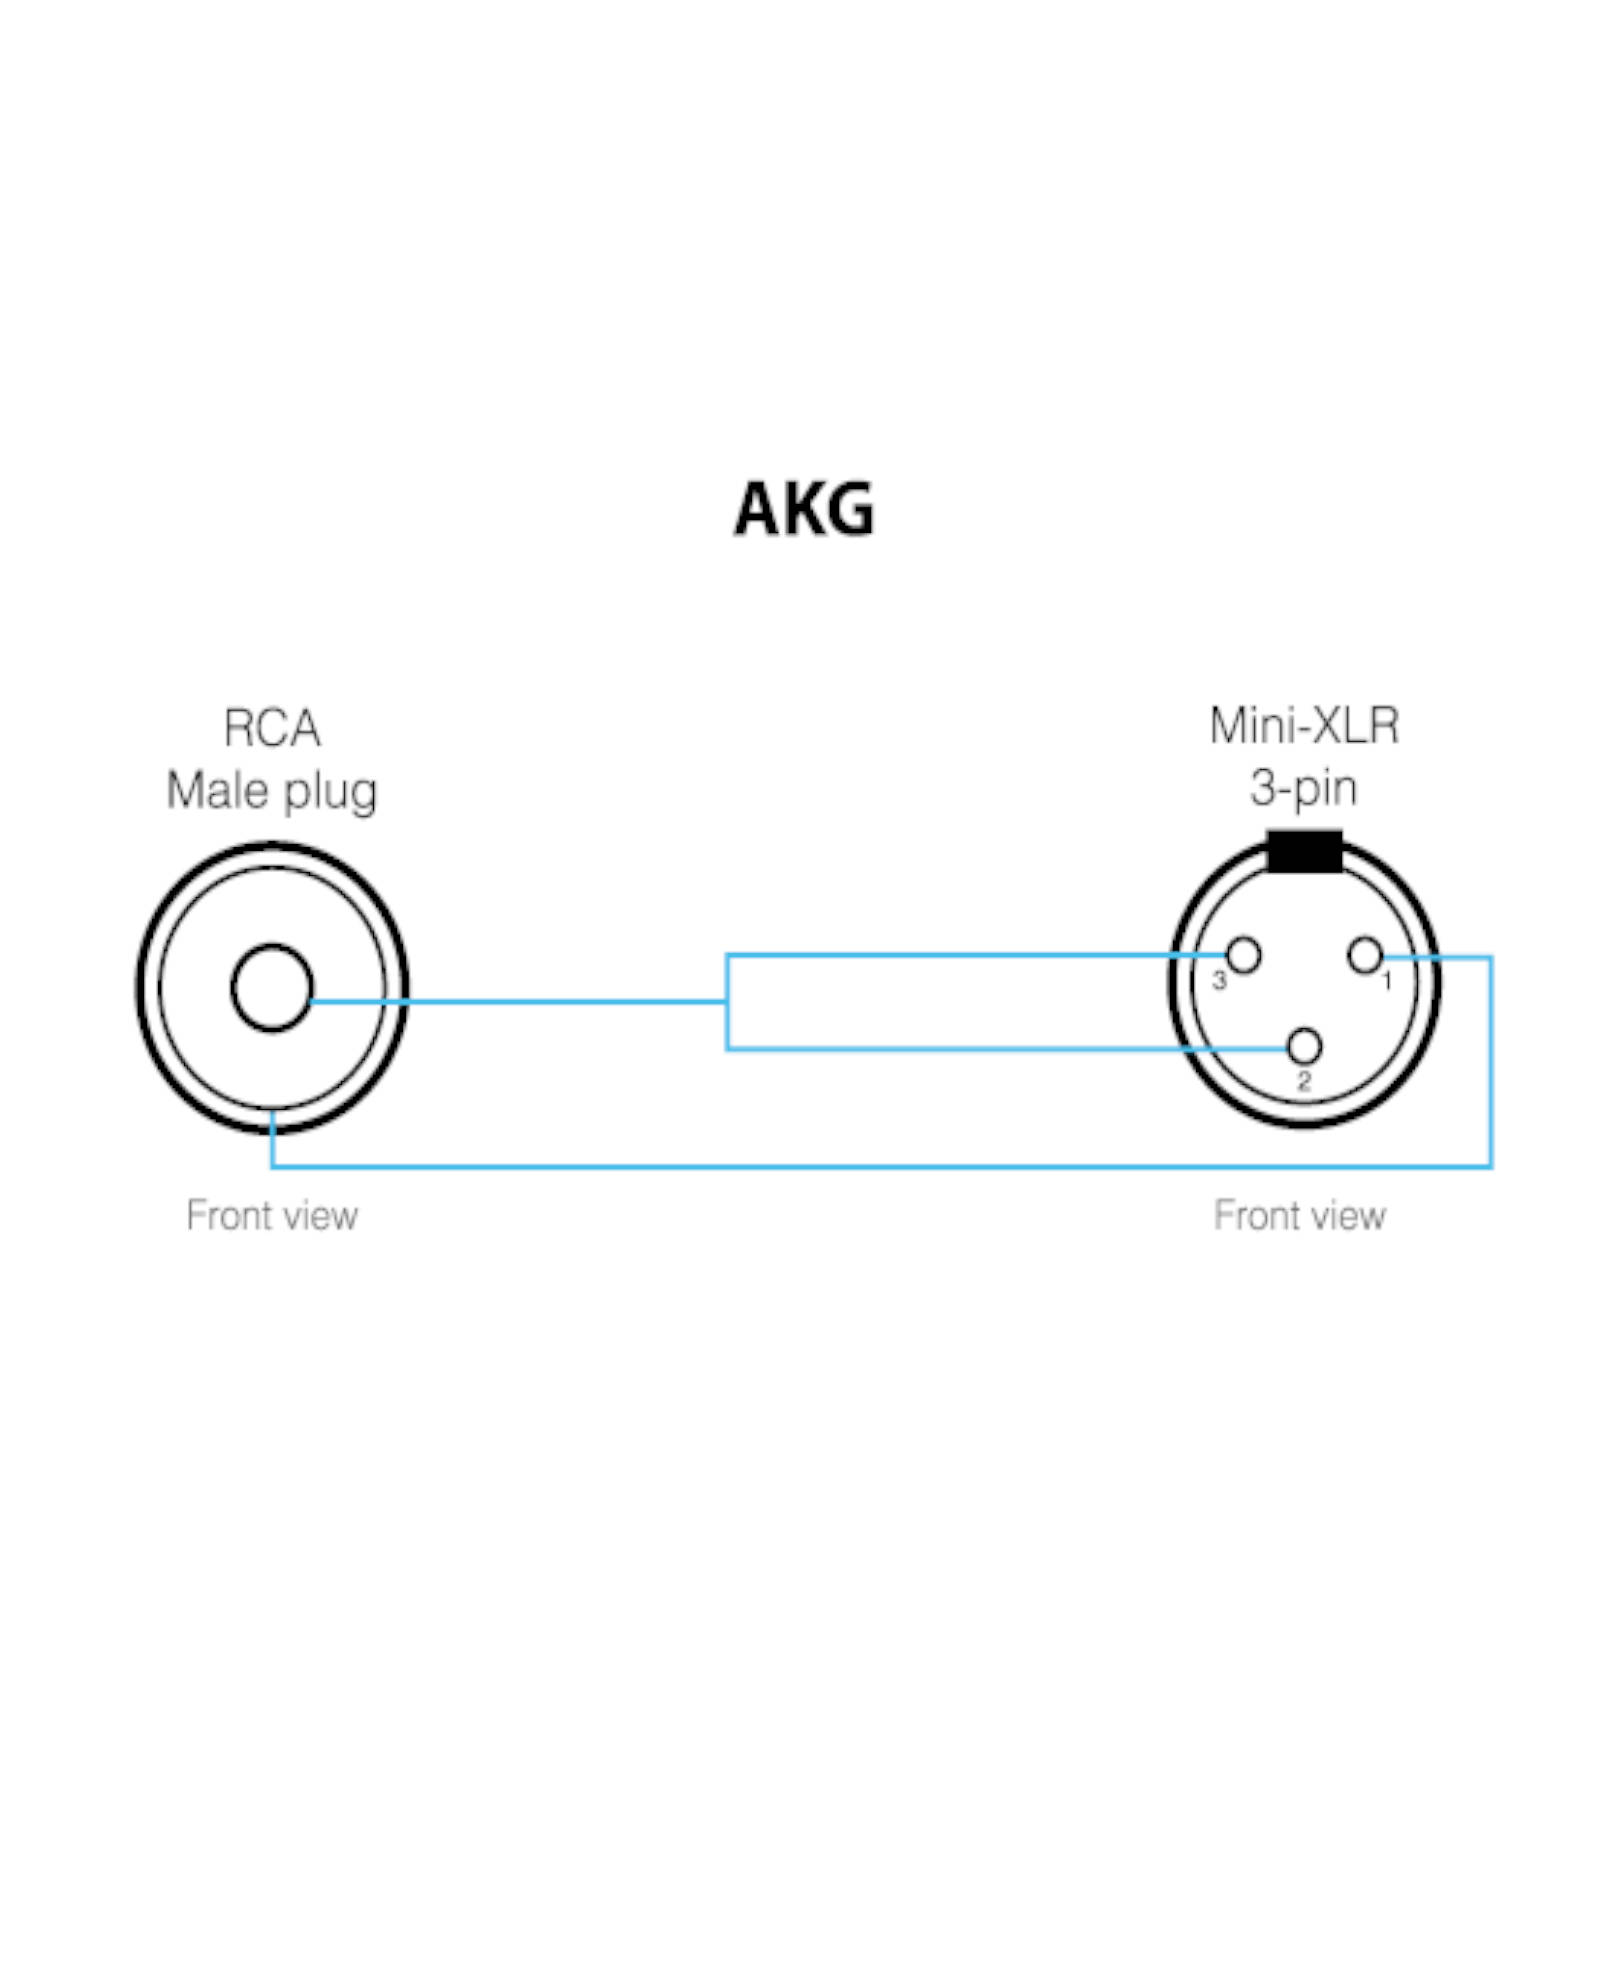 [DIAGRAM_38ZD]  DIAGRAM] Akg D112 Wiring Diagram FULL Version HD Quality Wiring Diagram -  SELFDIAGRAM.ANNA-MAILLARD.FR | Akg D112 Wiring Diagram |  | selfdiagram.anna-maillard.fr